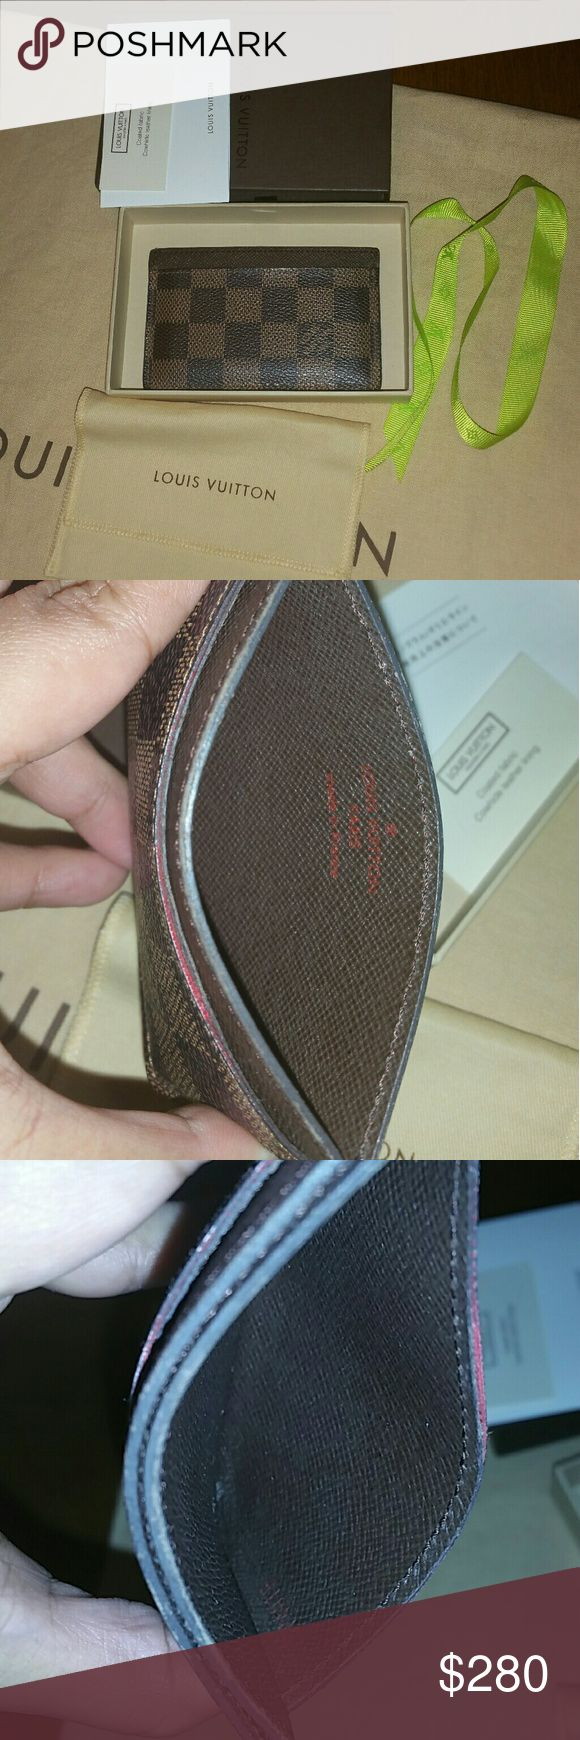 SOLD PP)AUTHENTIC Louis vuitton Credit card holder Pre-owned Louis vuitton credit card holder in great condition, inside is clean exterior is good condition, there is a rubbed in the edges shows in the picture Come dust cover and box and Lv care card. Made in France Date code no SP4019  ** NO TRADE*** Louis Vuitton Bags Wallets